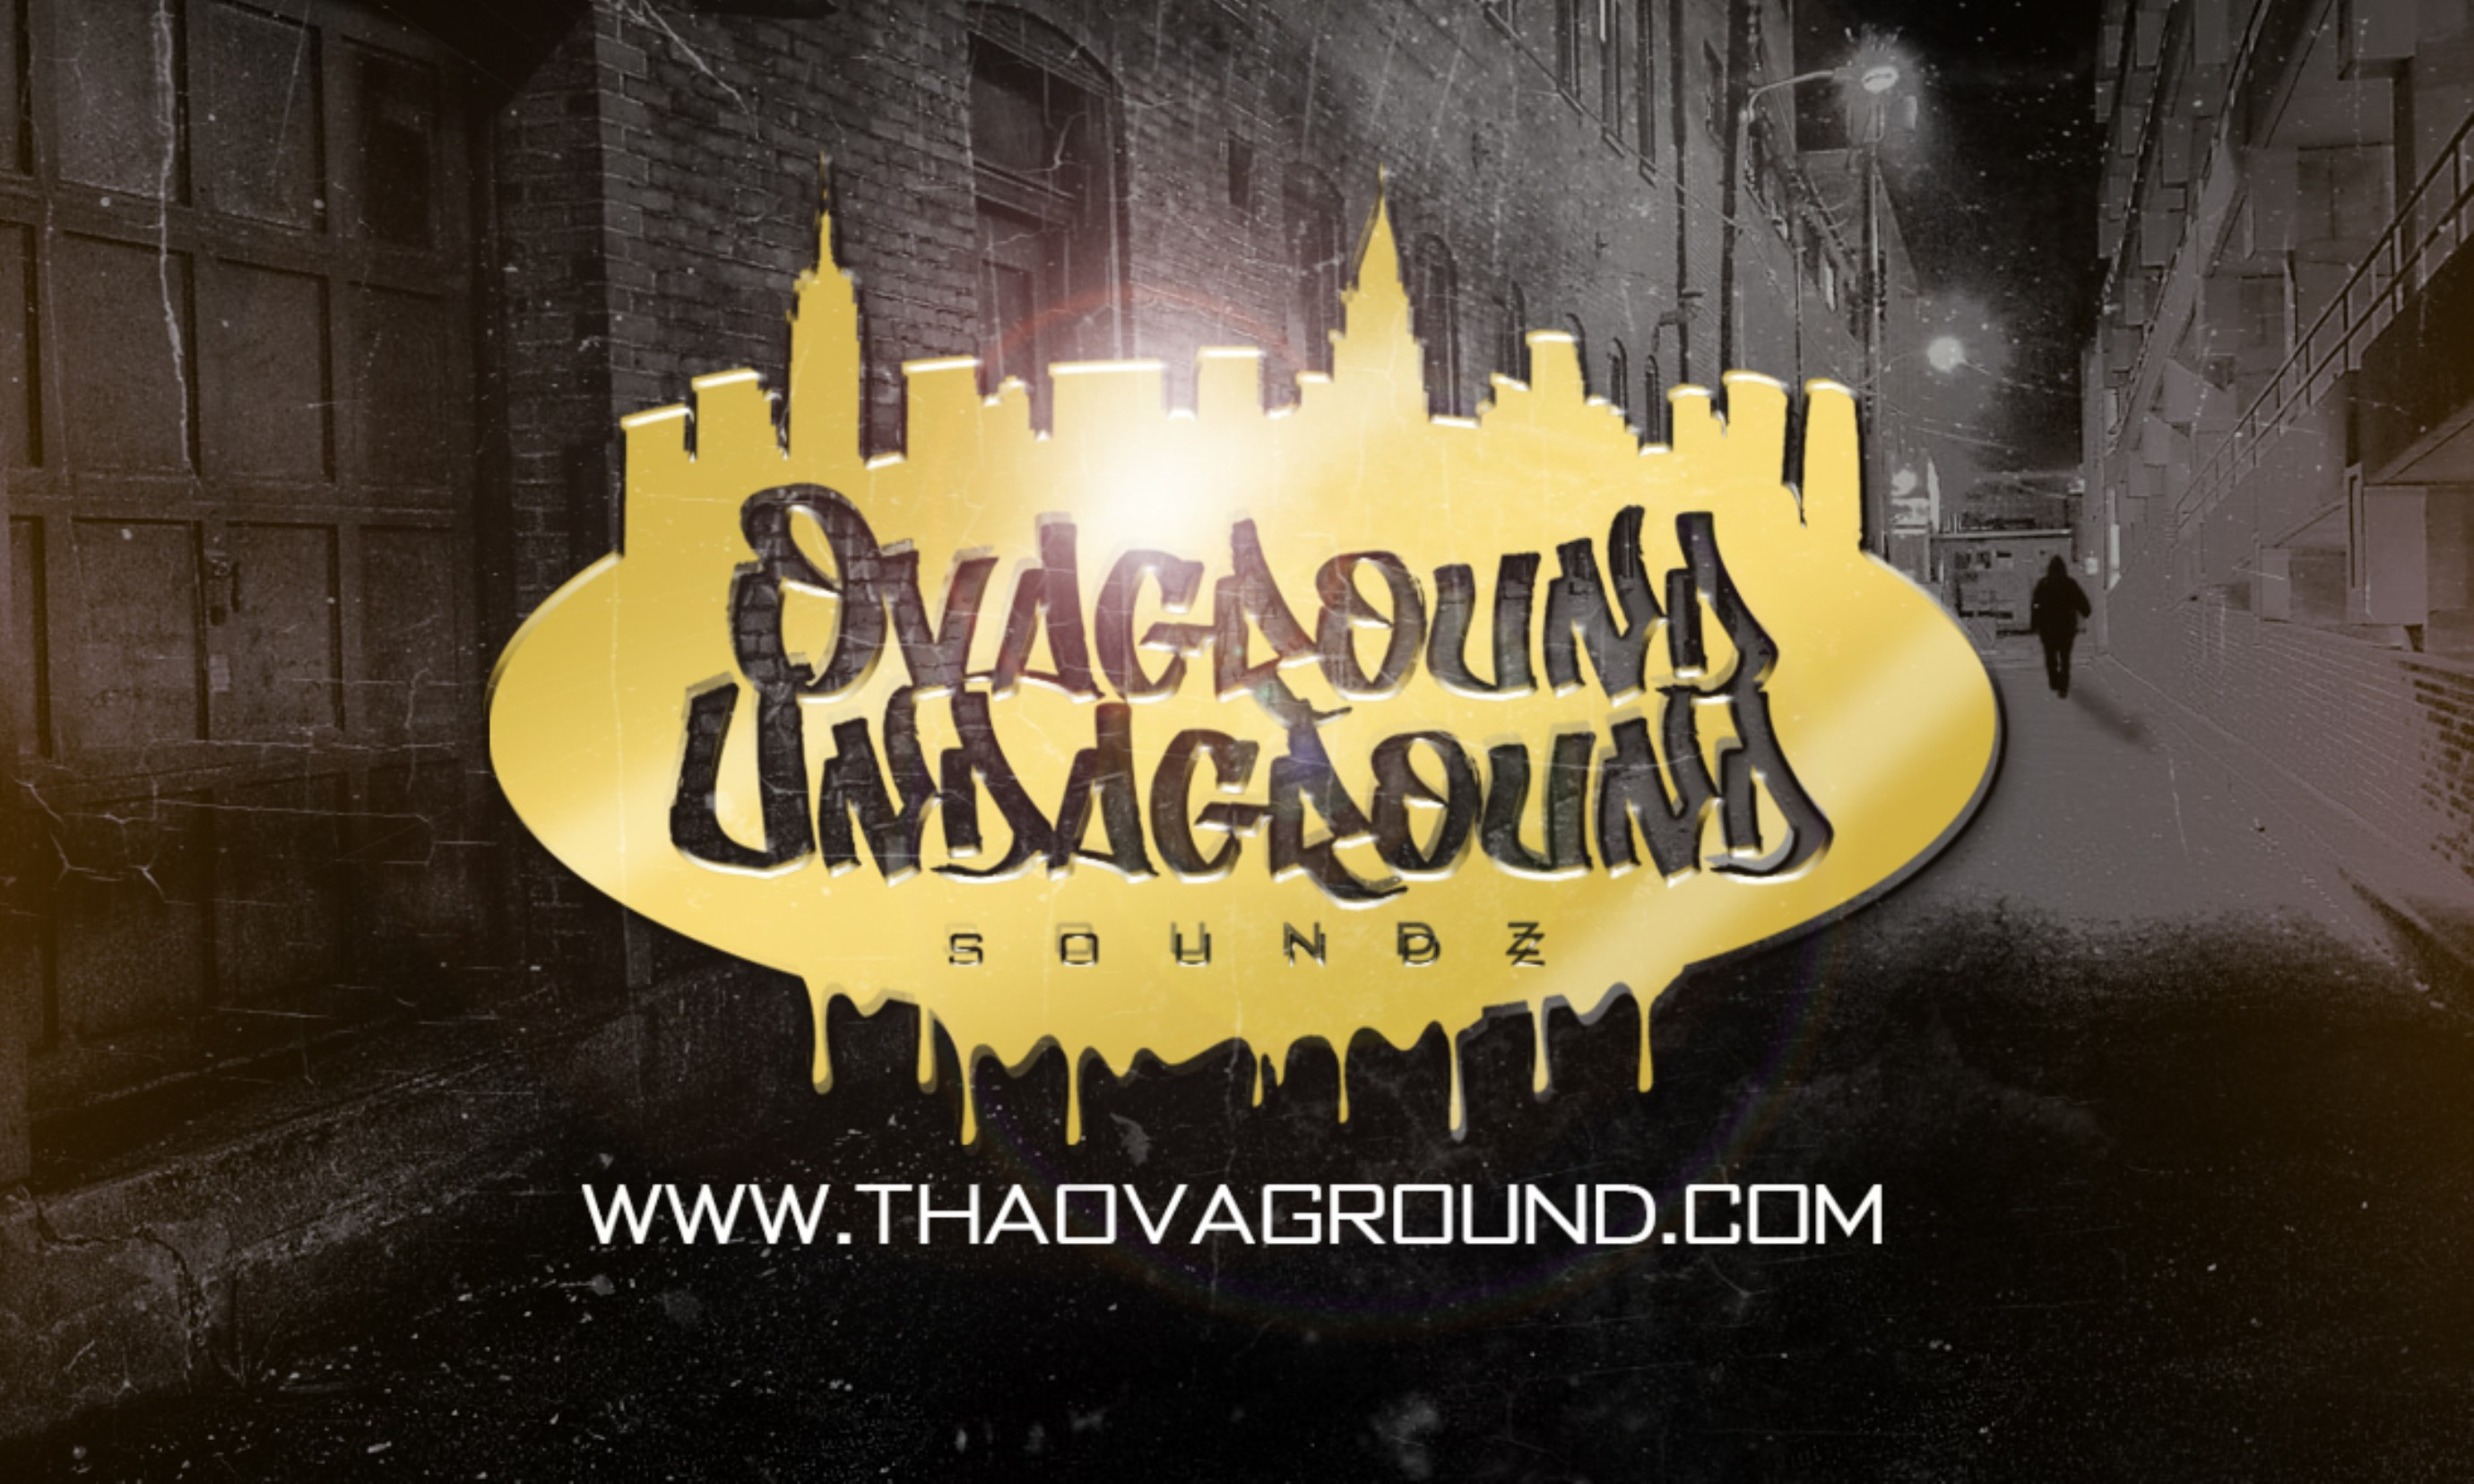 Ovaground Undaground SounDZ Est. 1999